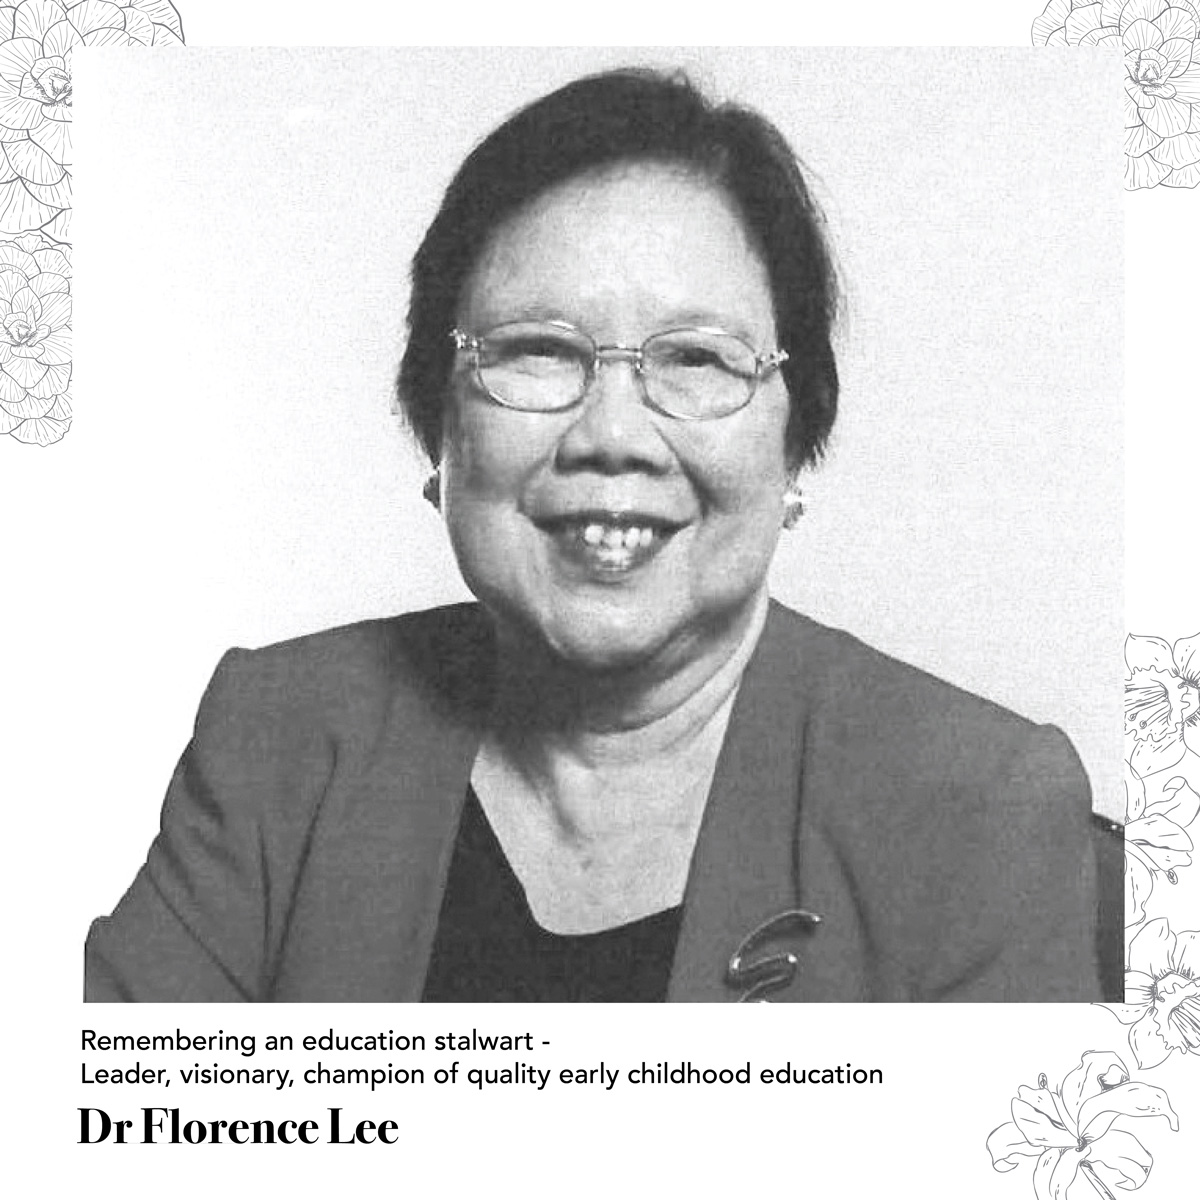 Remembering Dr Florence Lee